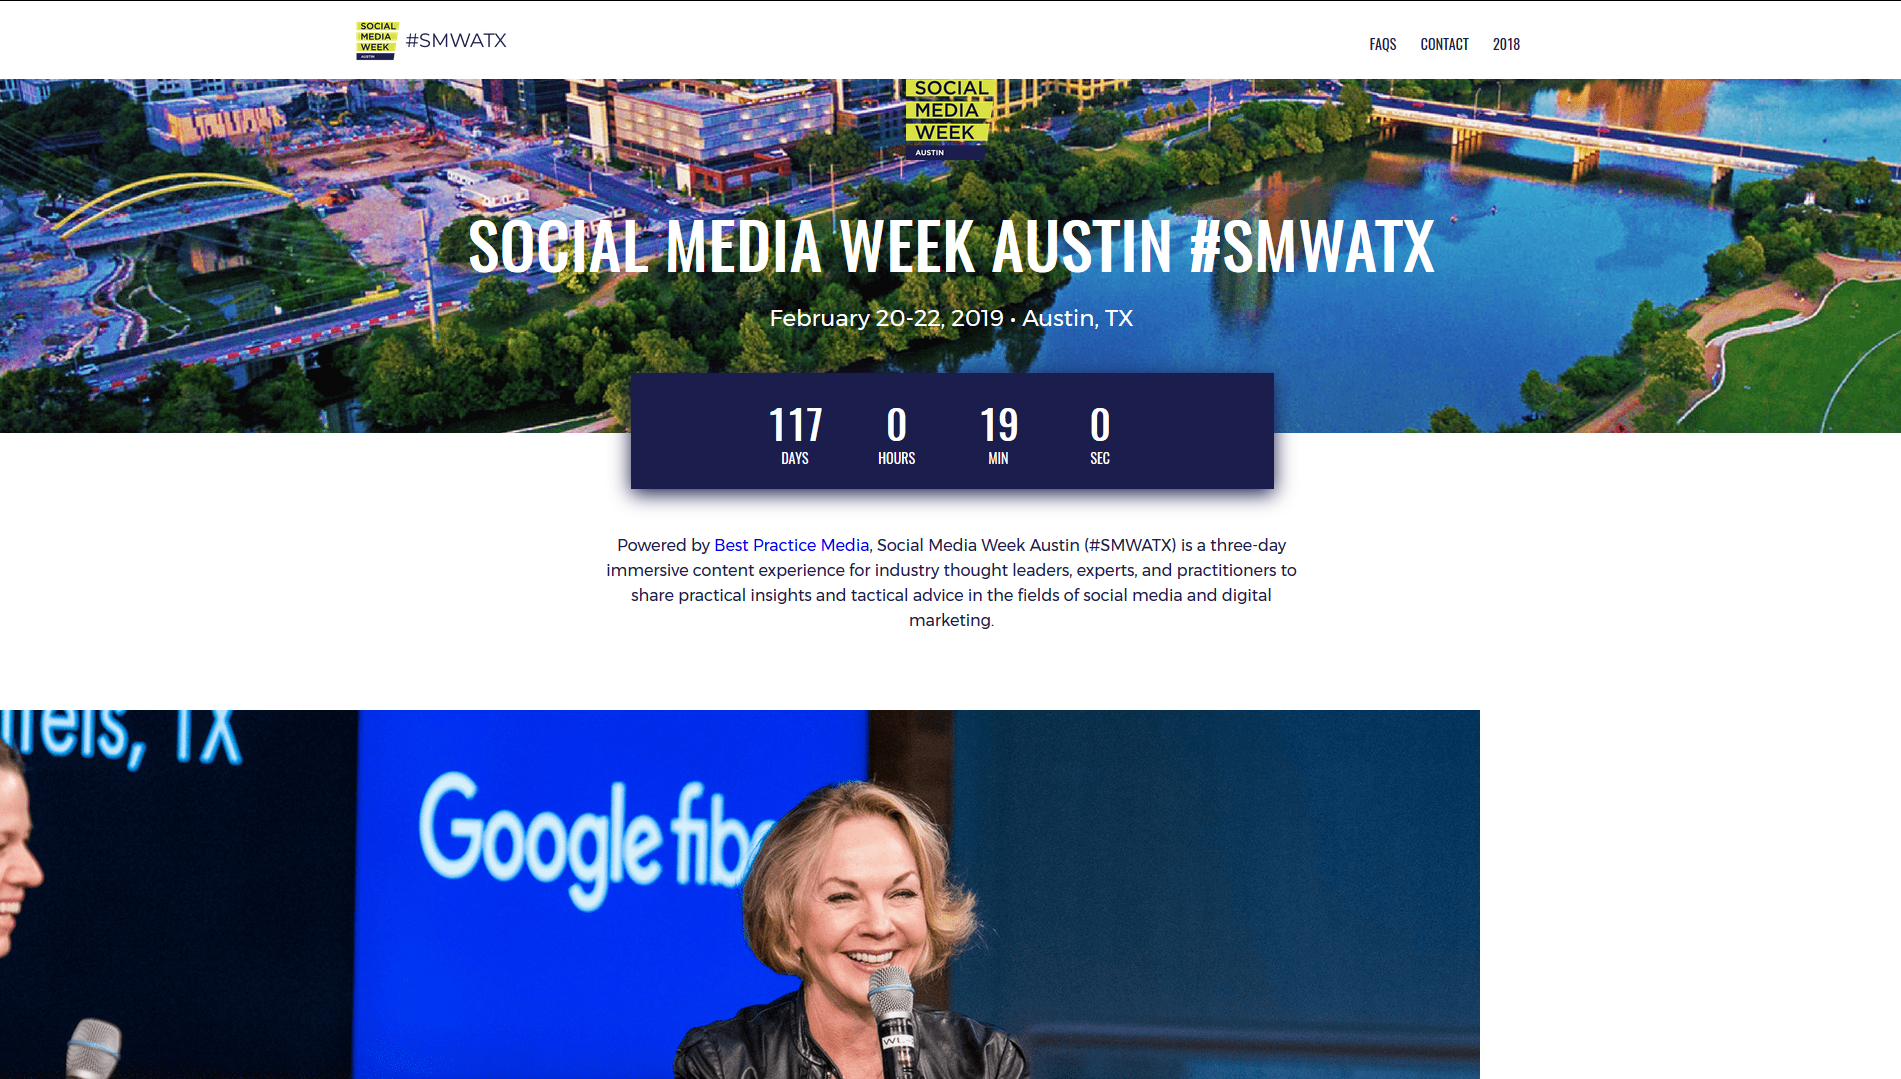 Social Media Week in Austin is one of the best social media conferences